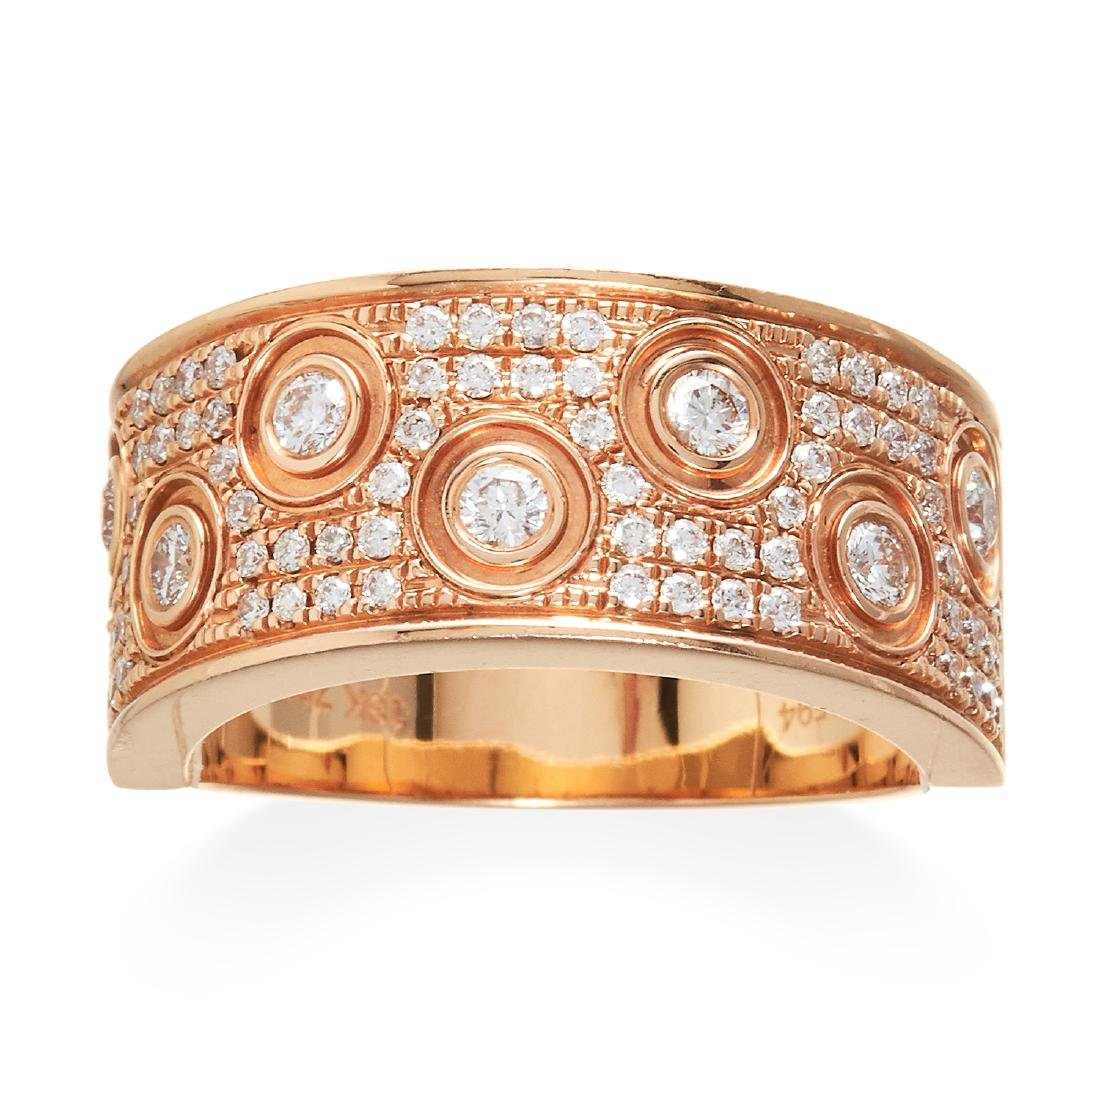 A DIAMOND DRESS RING in 18ct rose gold, jewelled with